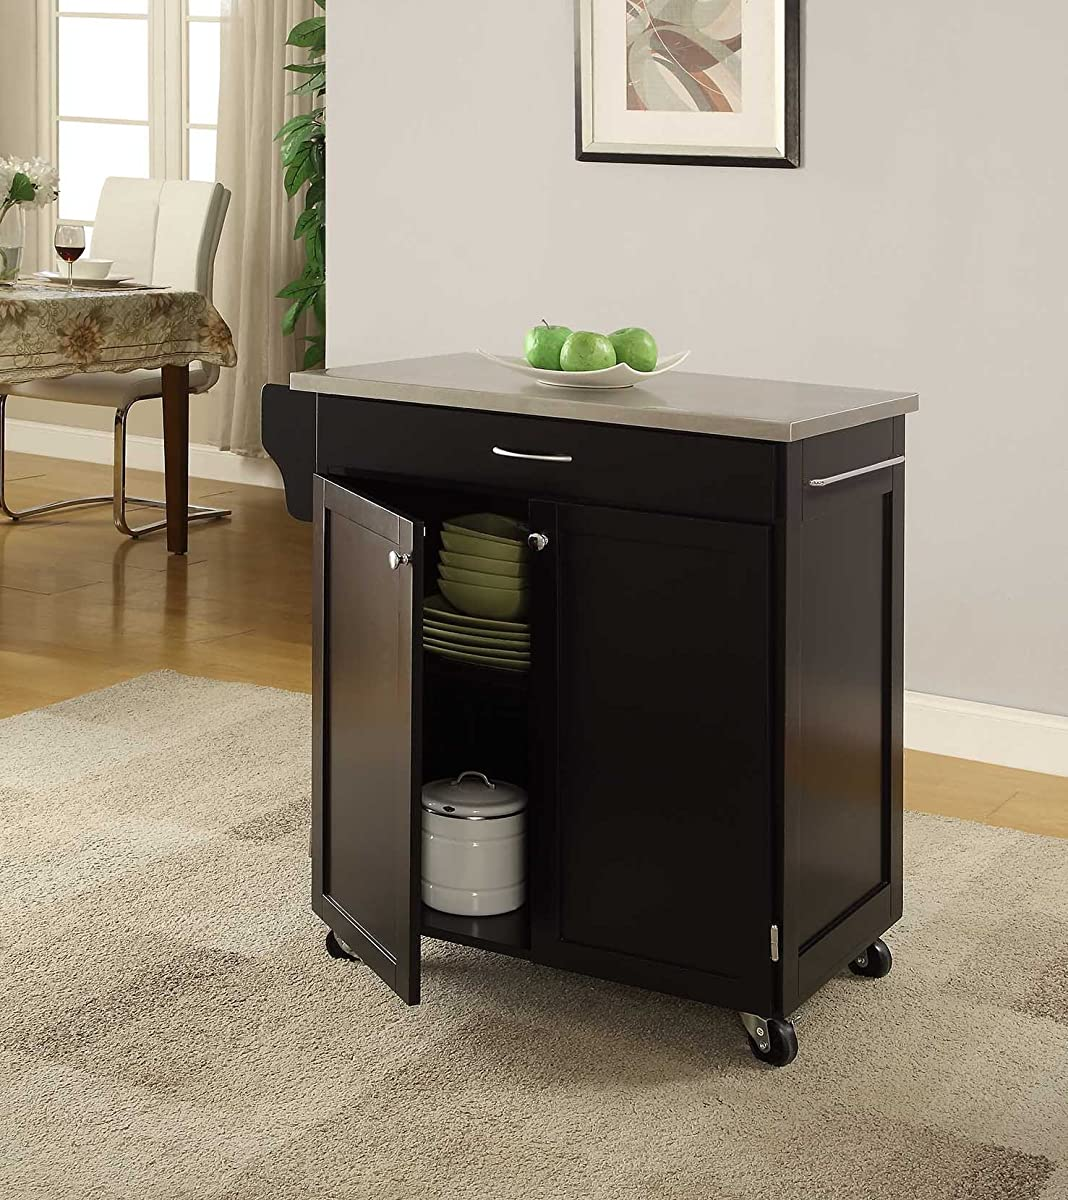 """Oliver and Smith - Nashville Collection - Mobile Kitchen Island Cart on Wheels - Black - Stainless Steel Top - 33"""" W x 18"""" L x 36"""" H"""